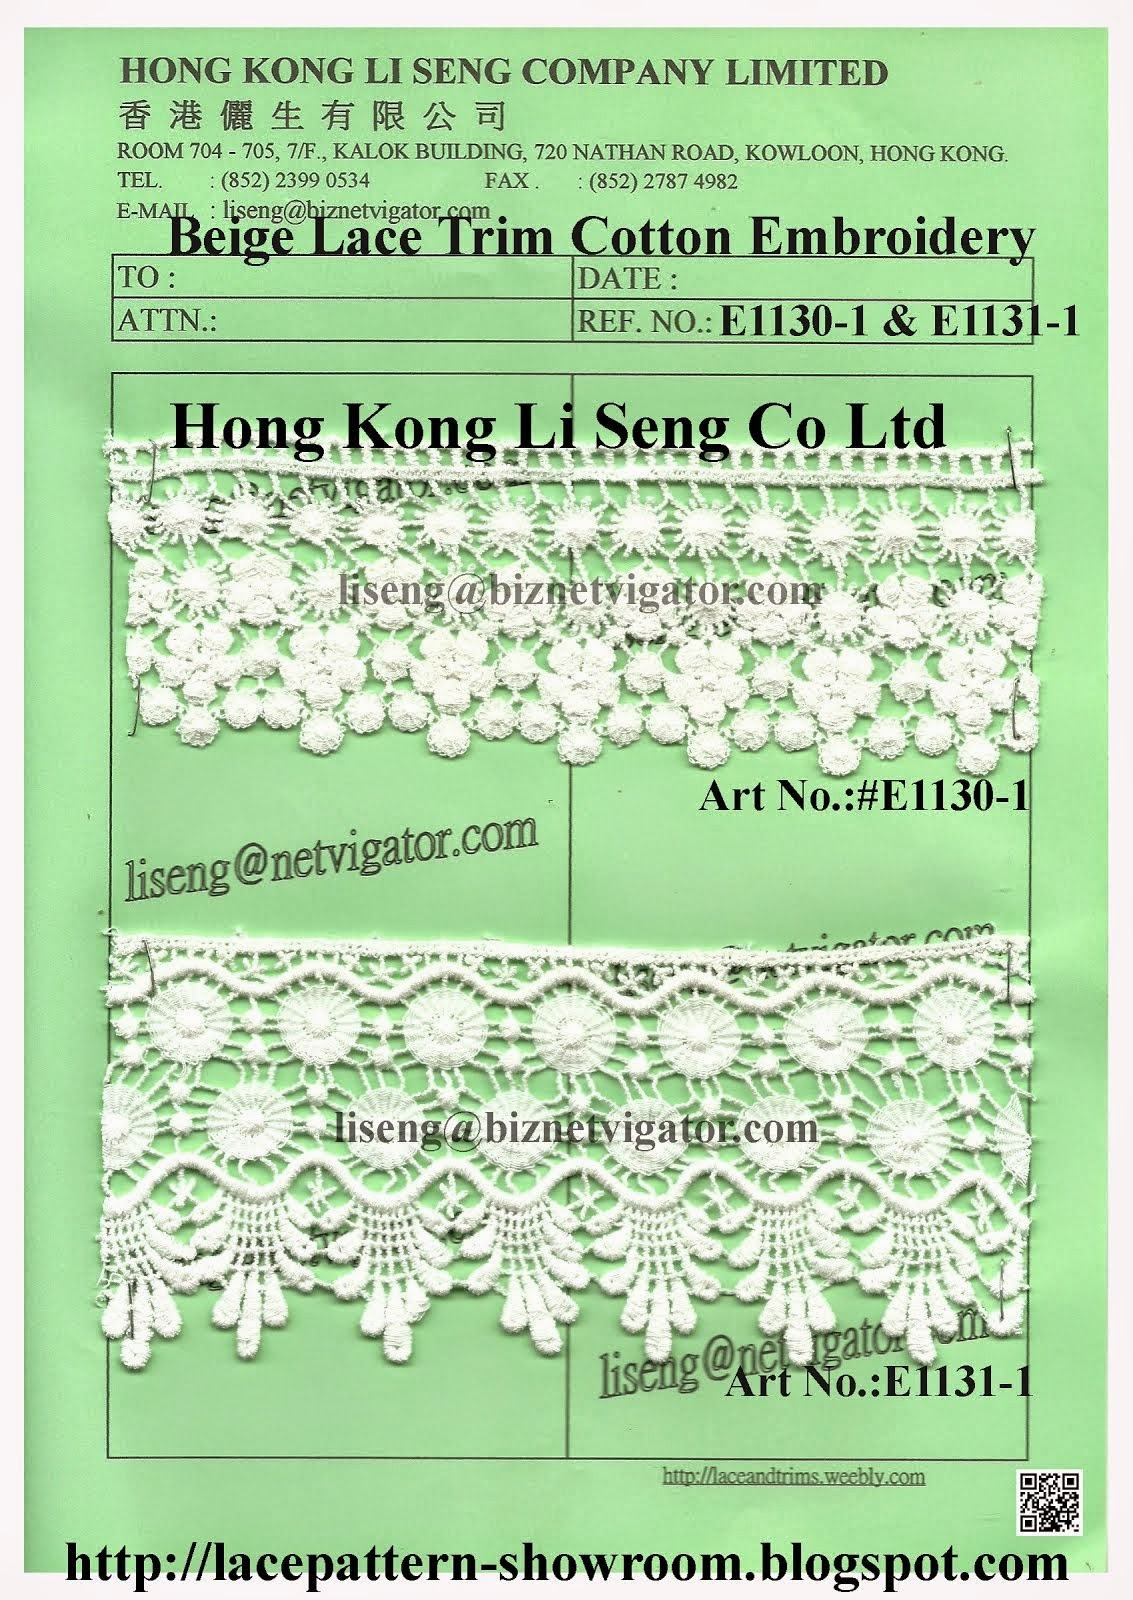 Beige Lace Trim Cotton Embroidery Manufacturer - Hong Kong Li Seng Co Ltd